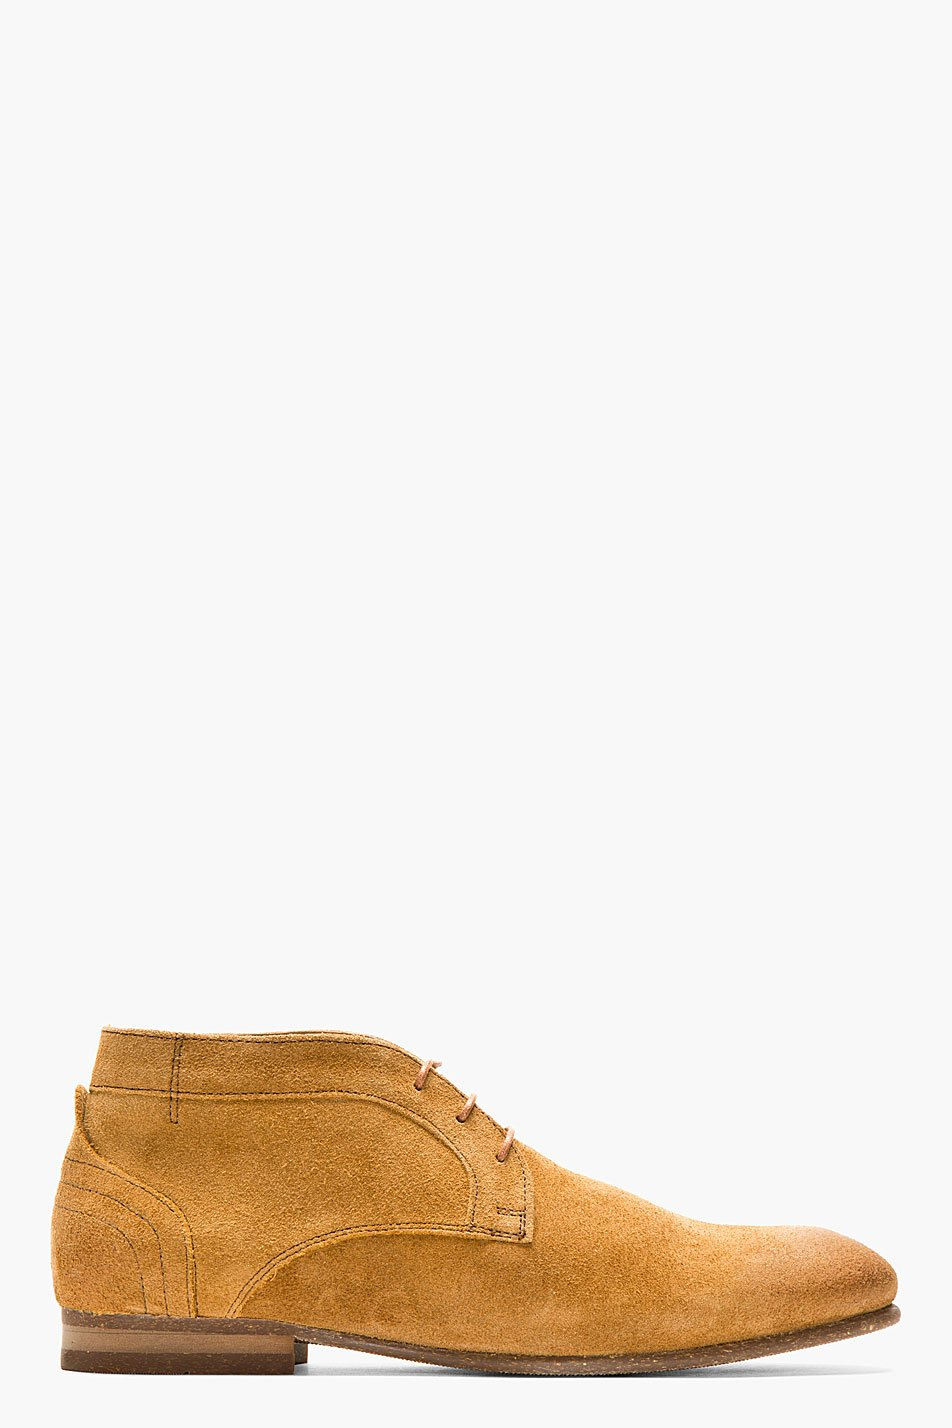 h by hudson brown suede thursom boots